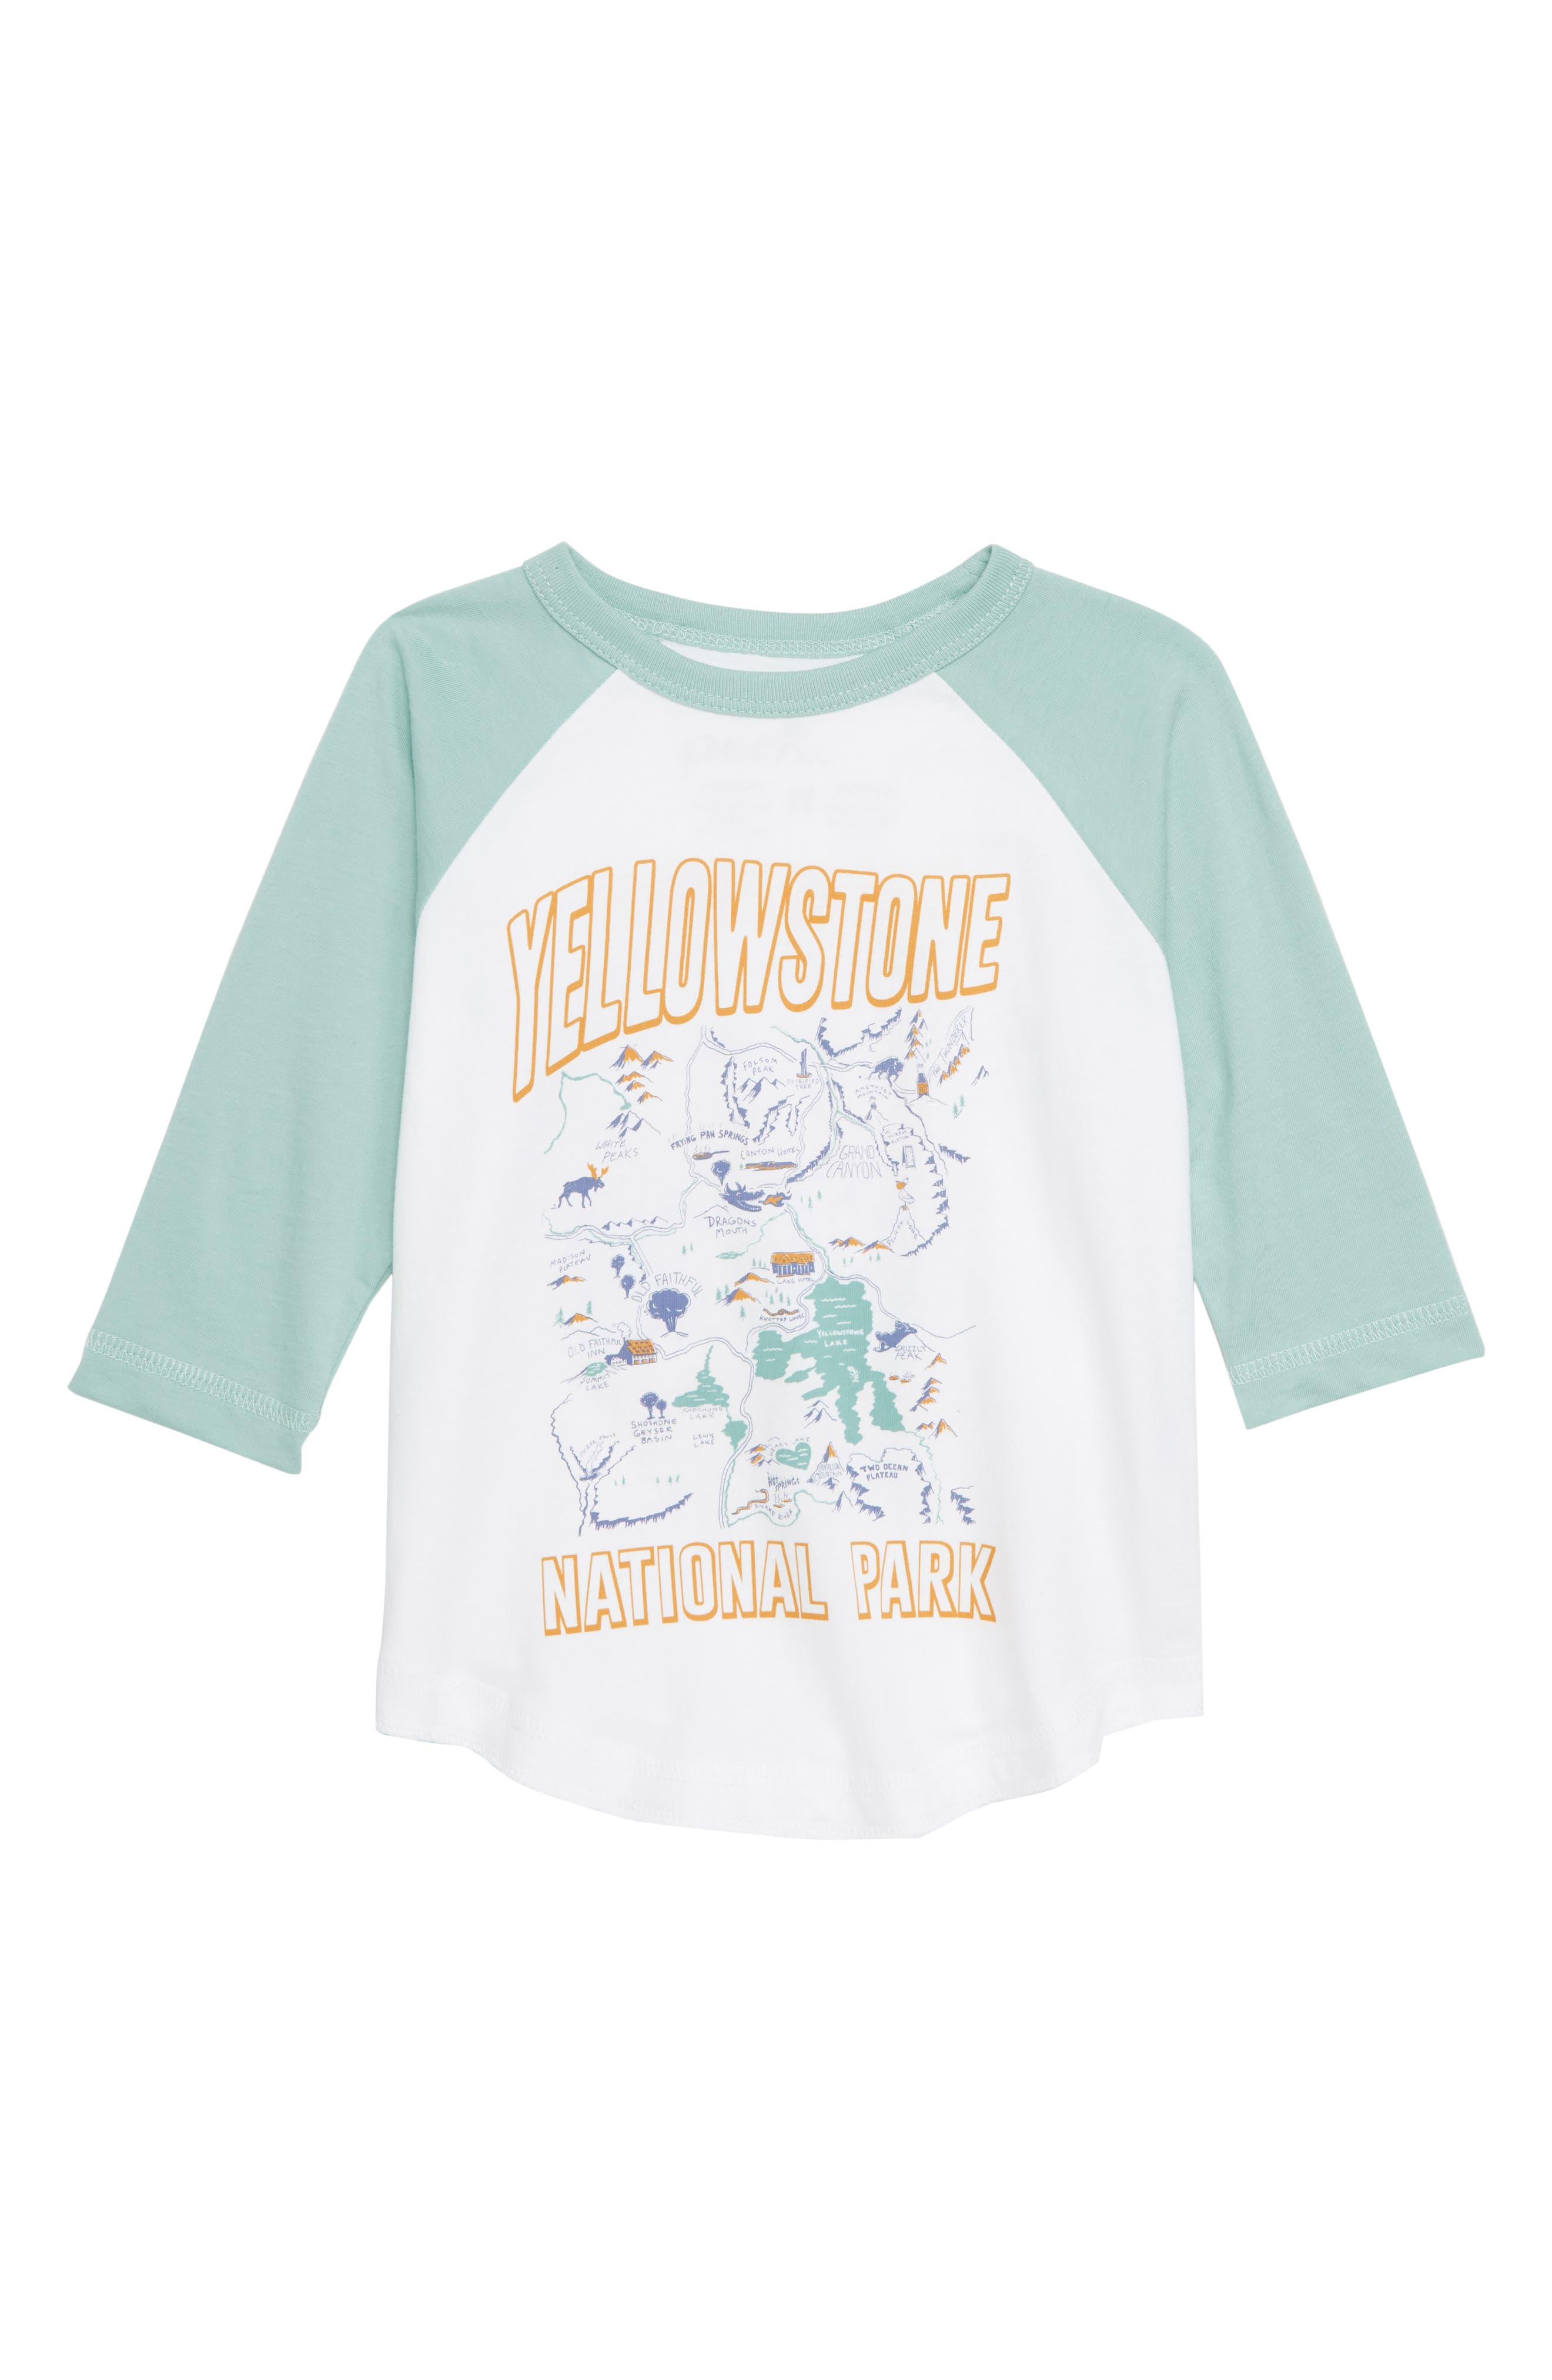 Yellowstone National Park Graphic T-Shirt,                         Main,                         color, WHITE